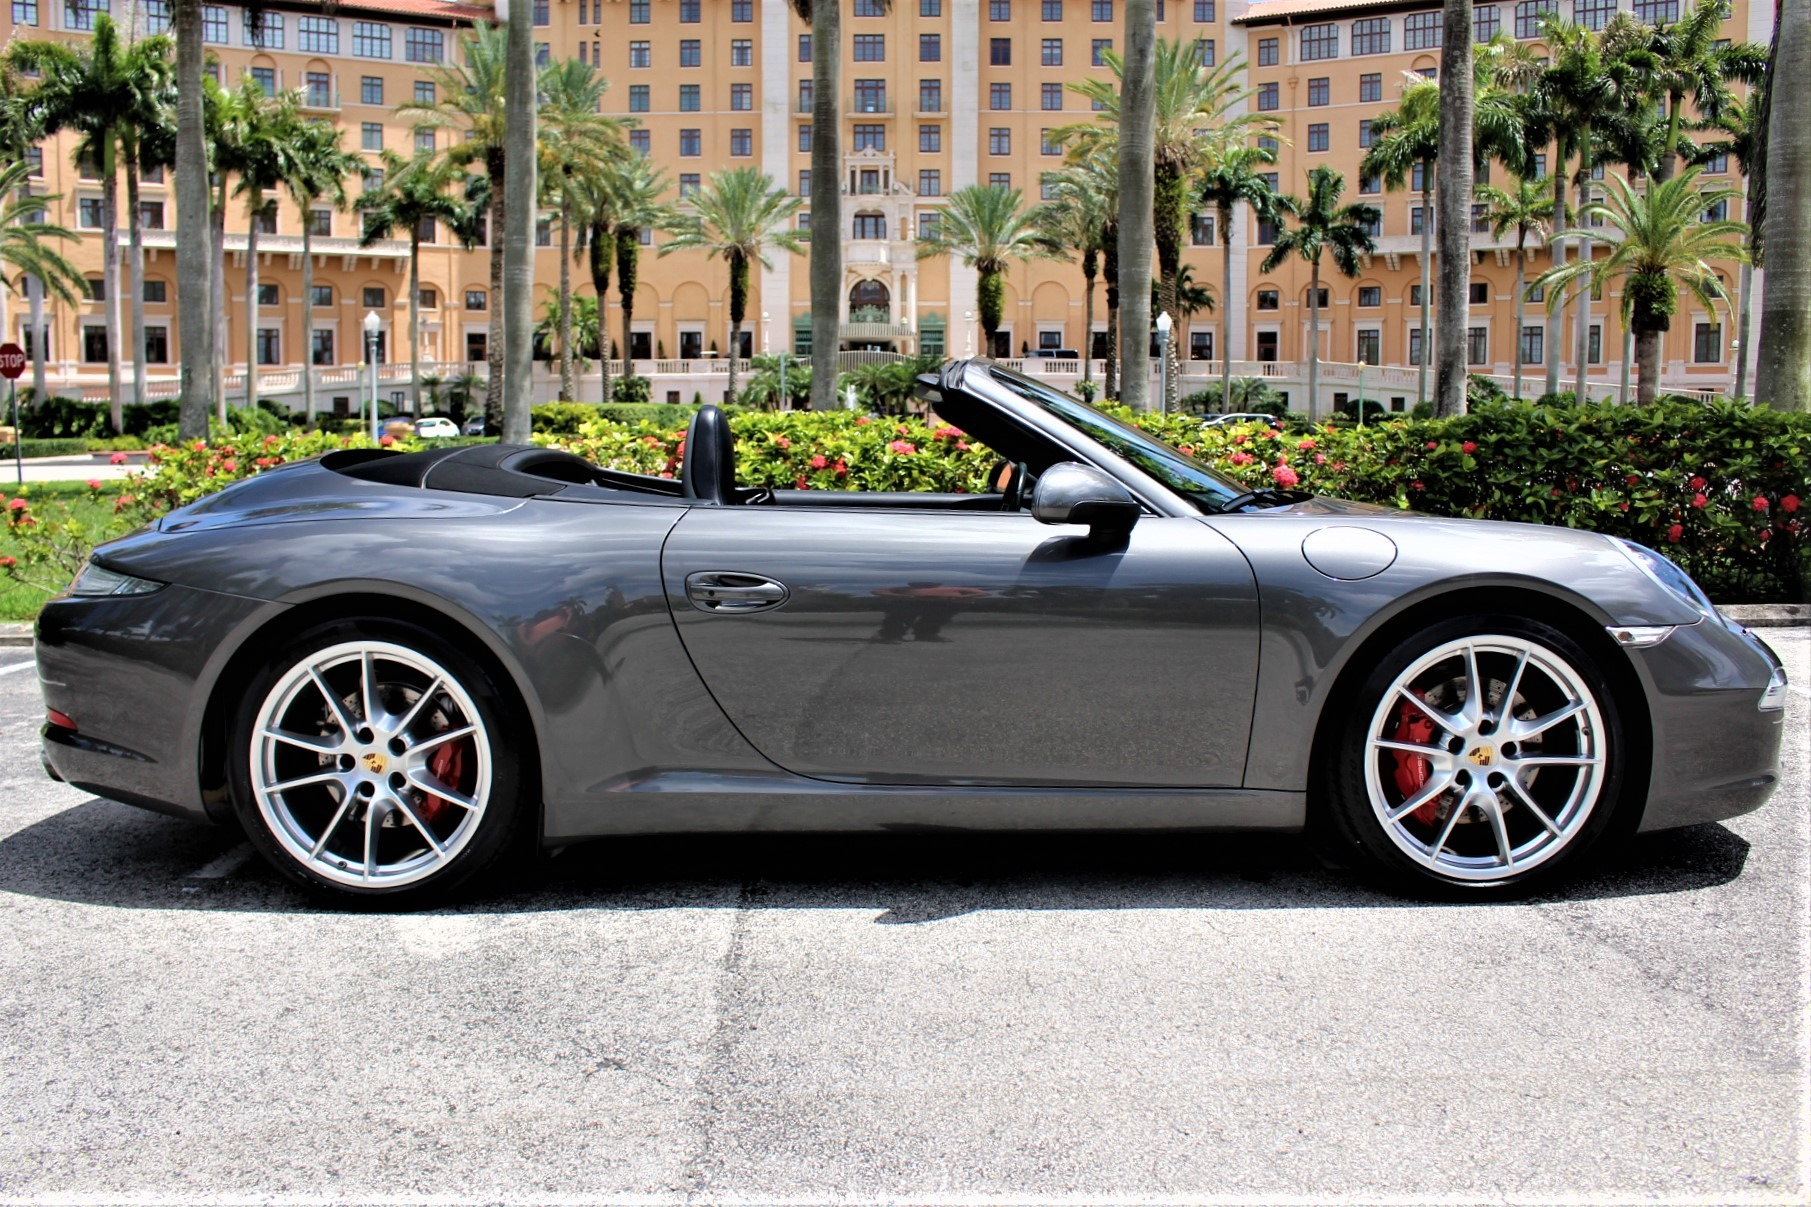 Used 2013 Porsche 911 Carrera S for sale Sold at The Gables Sports Cars in Miami FL 33146 1